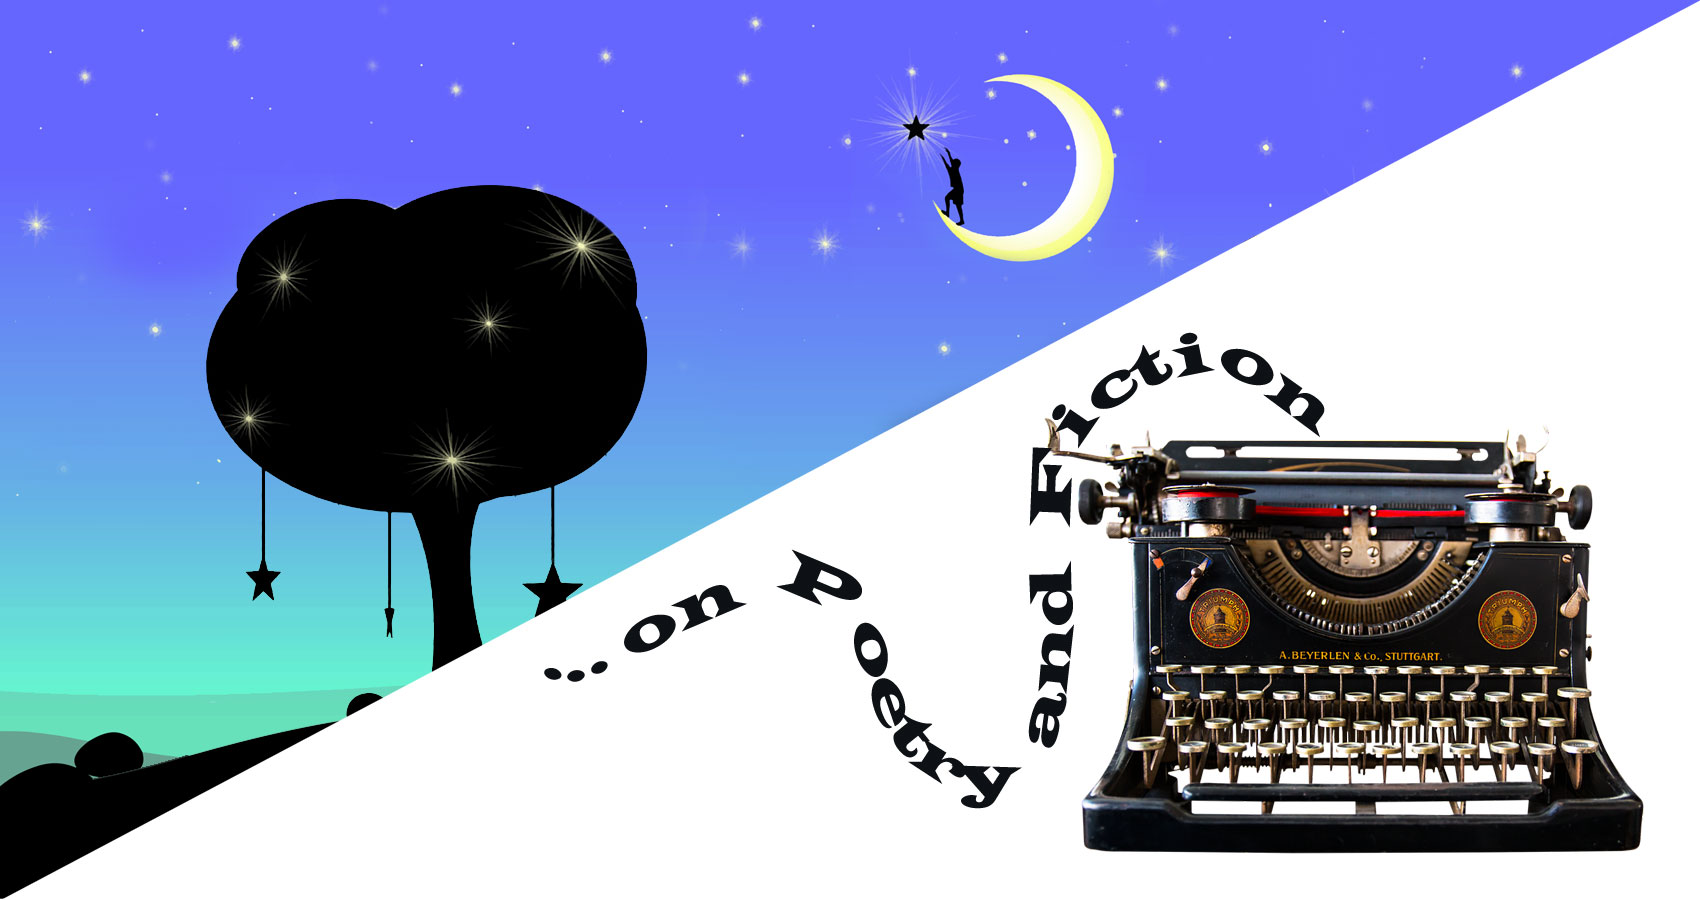 …On Poetry and Fiction - Just One Word Away (Dreams) at Spillwords.com